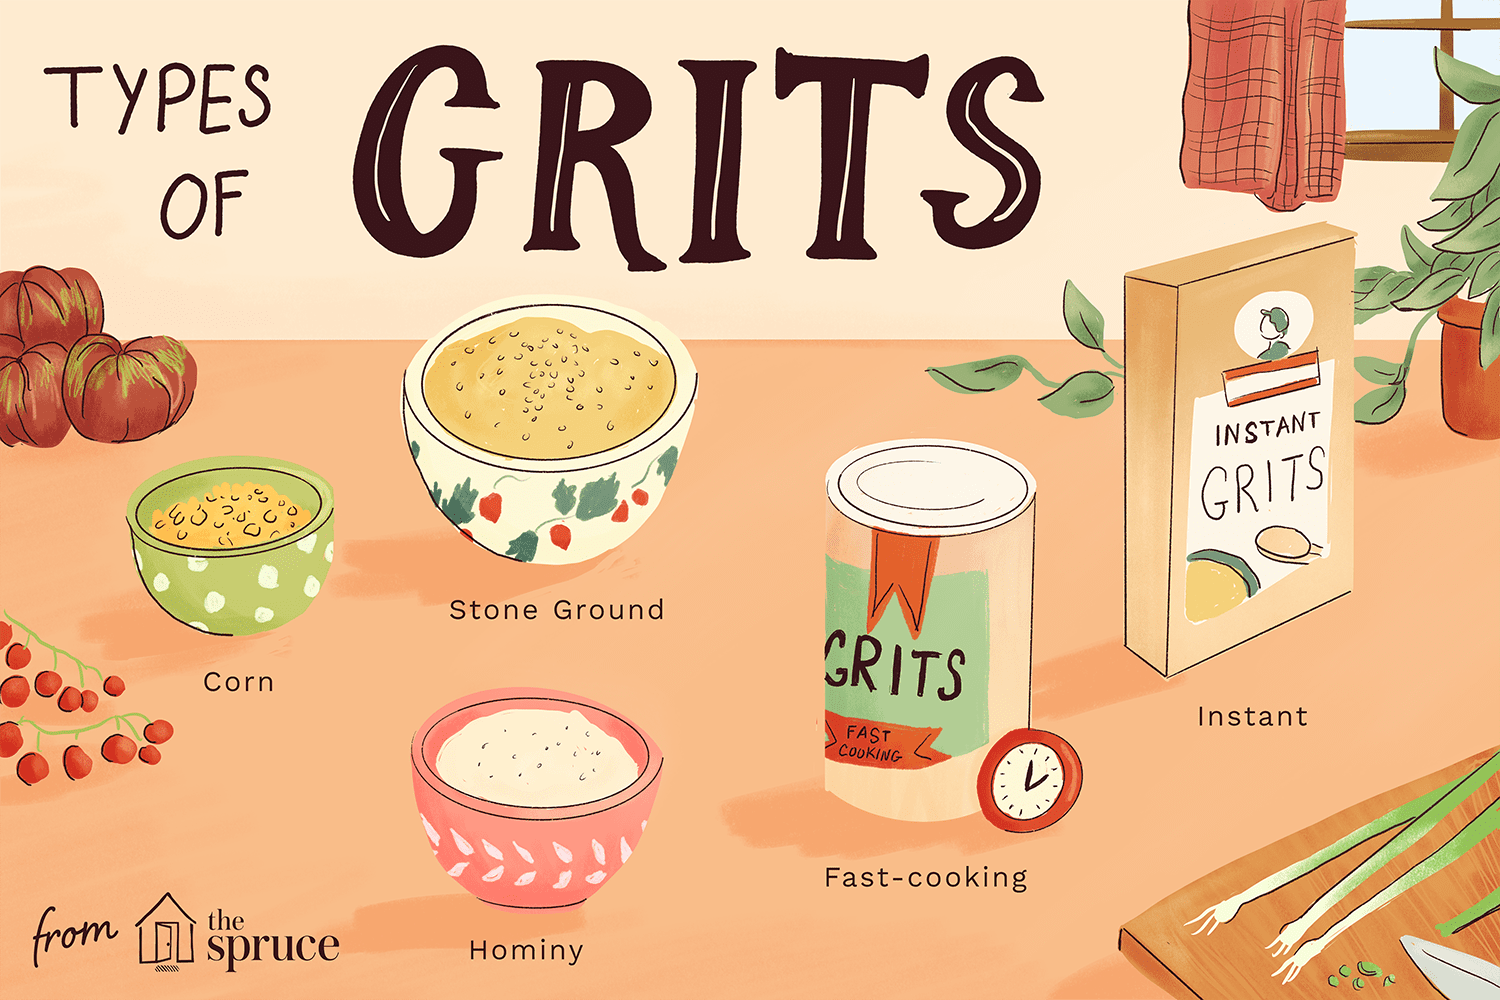 Types of grits